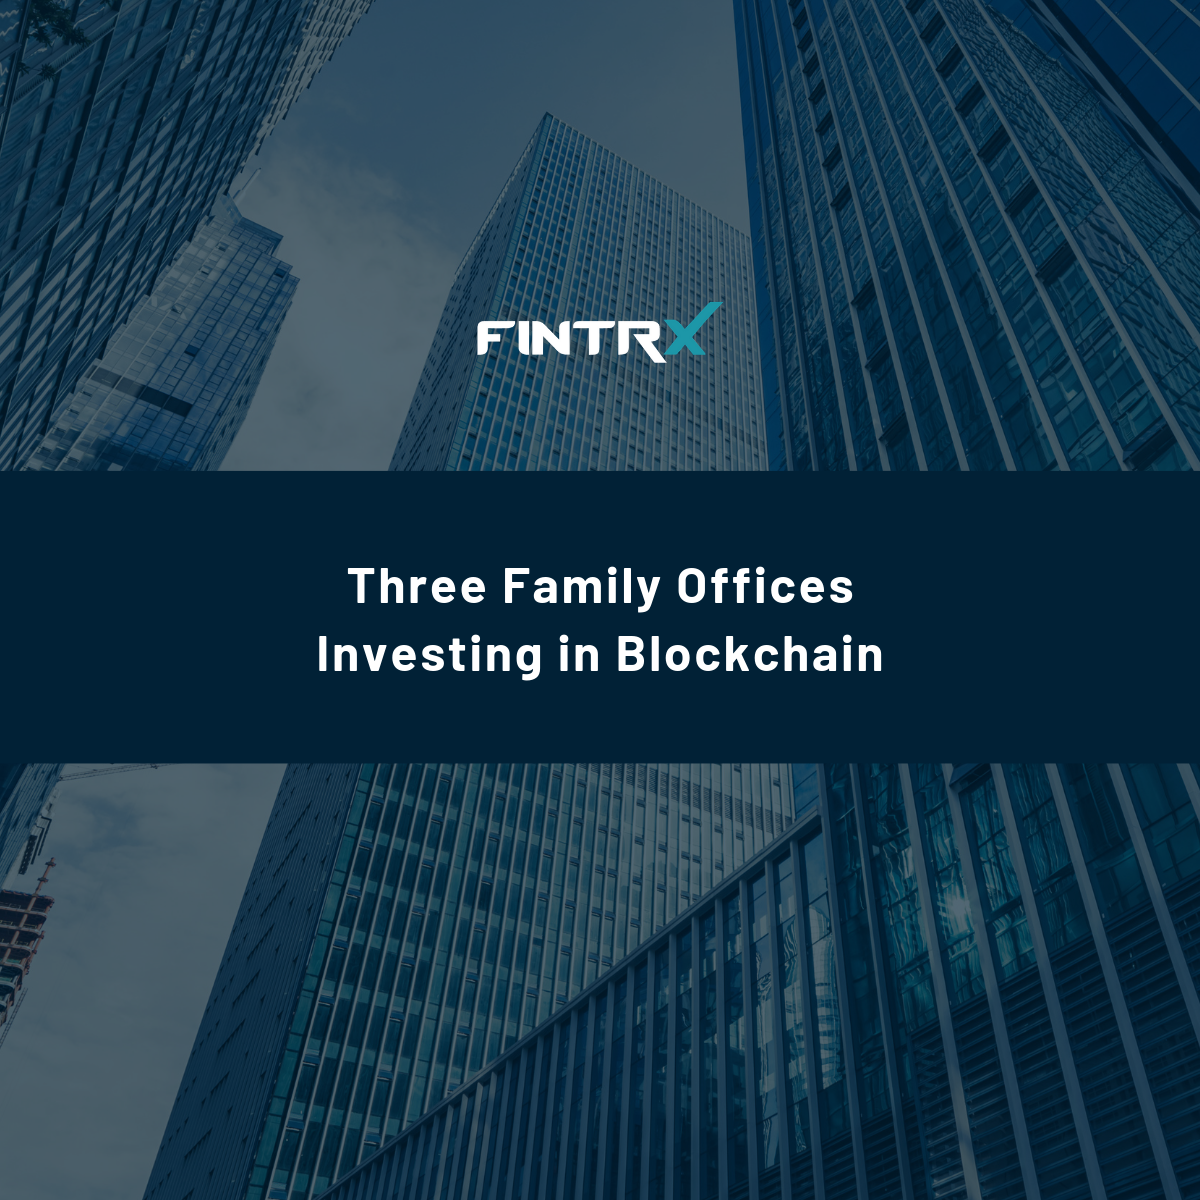 three family offices investing in blockchain